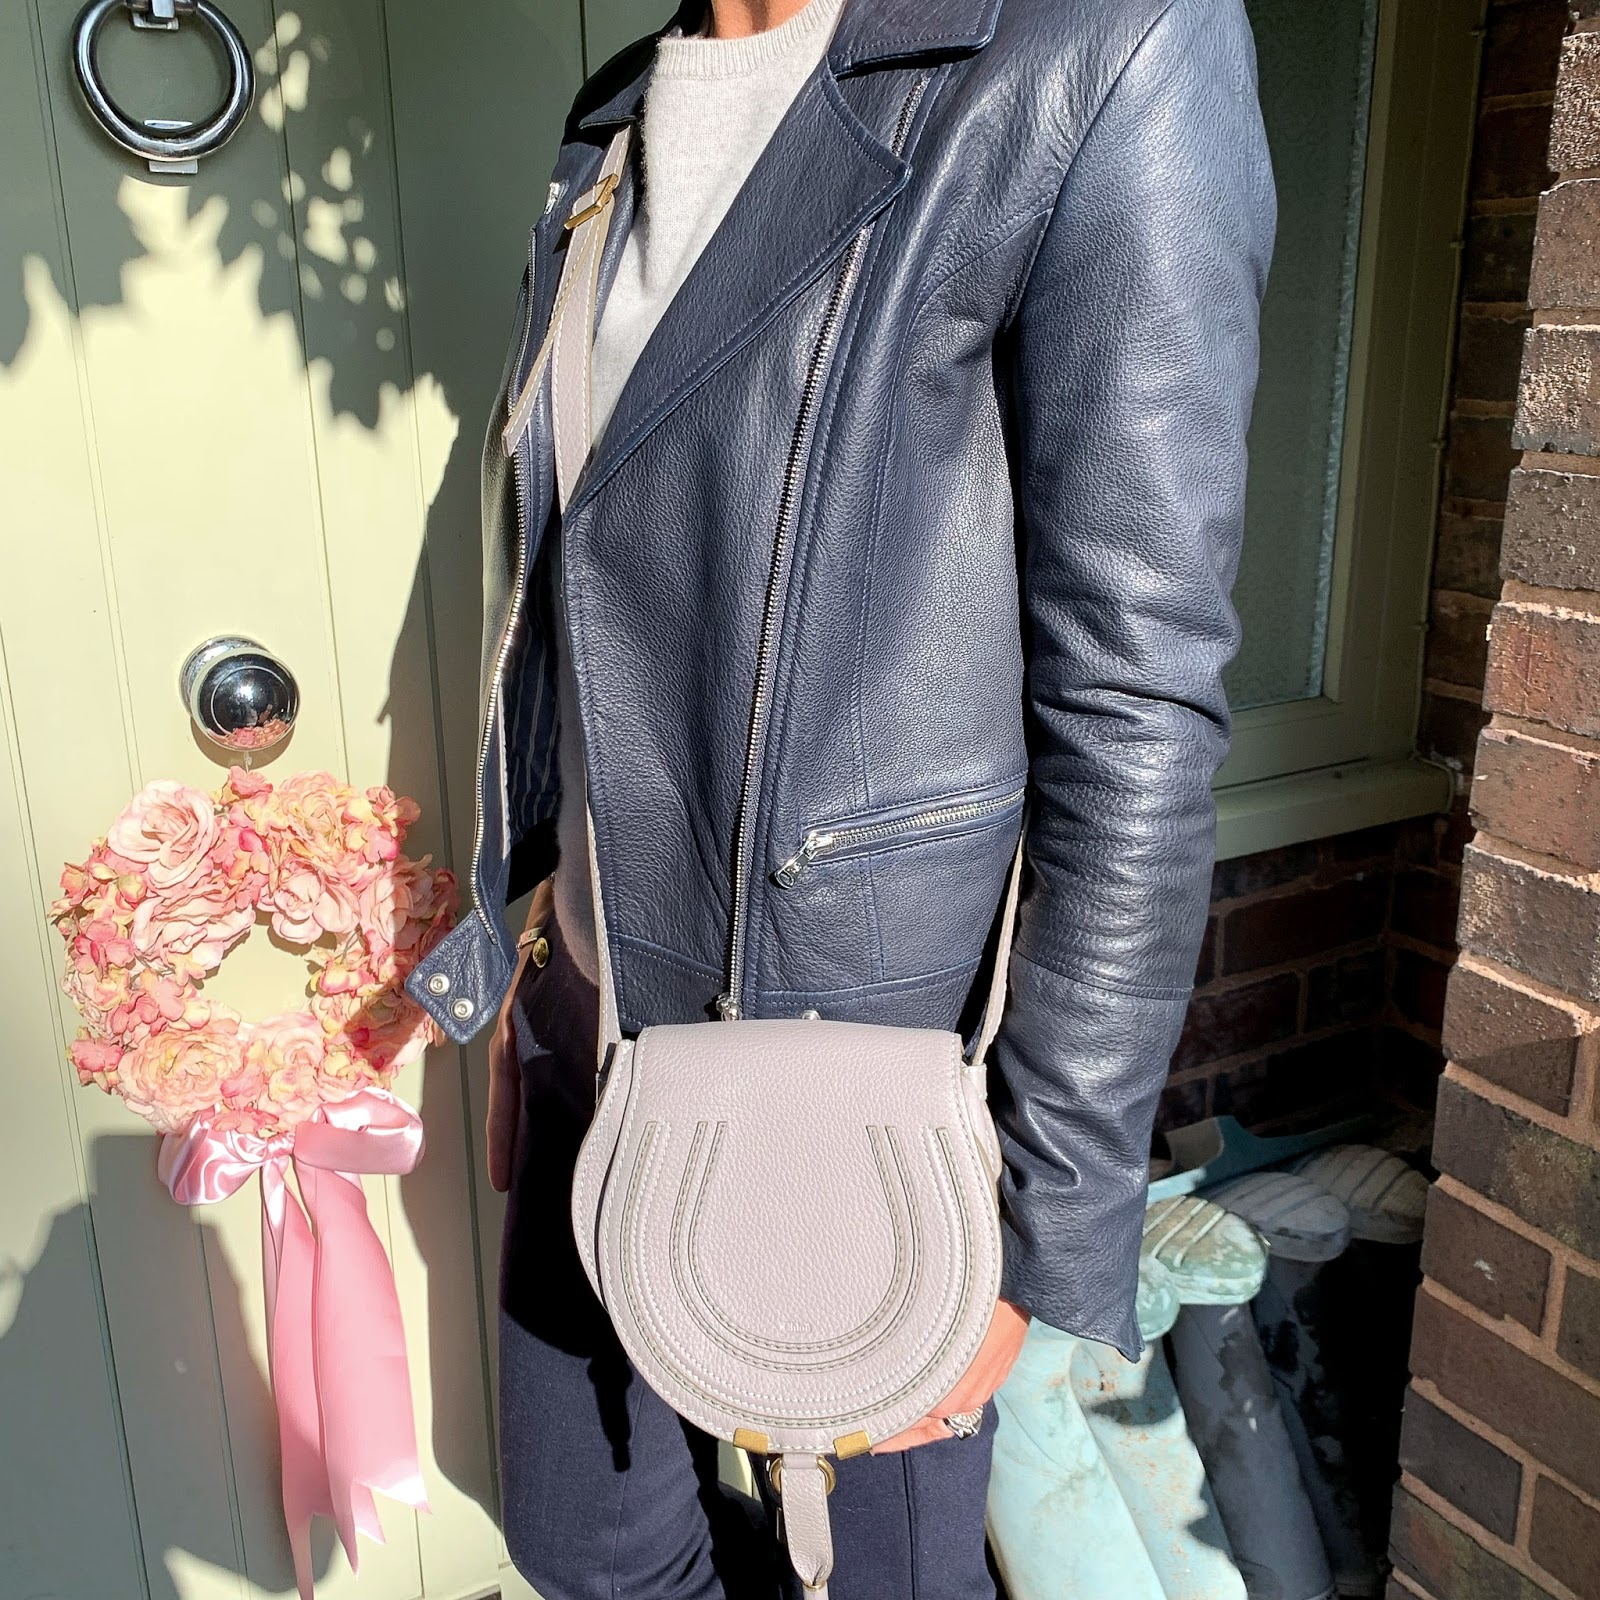 my midlife fashion, massimo dutti leather biker jacket, marks and spencer pure cashmere round neck jumper, chloe marcie small acrossbody bag, j crew cropped kick flare trousers, jones bootmake ella leather flat loafer